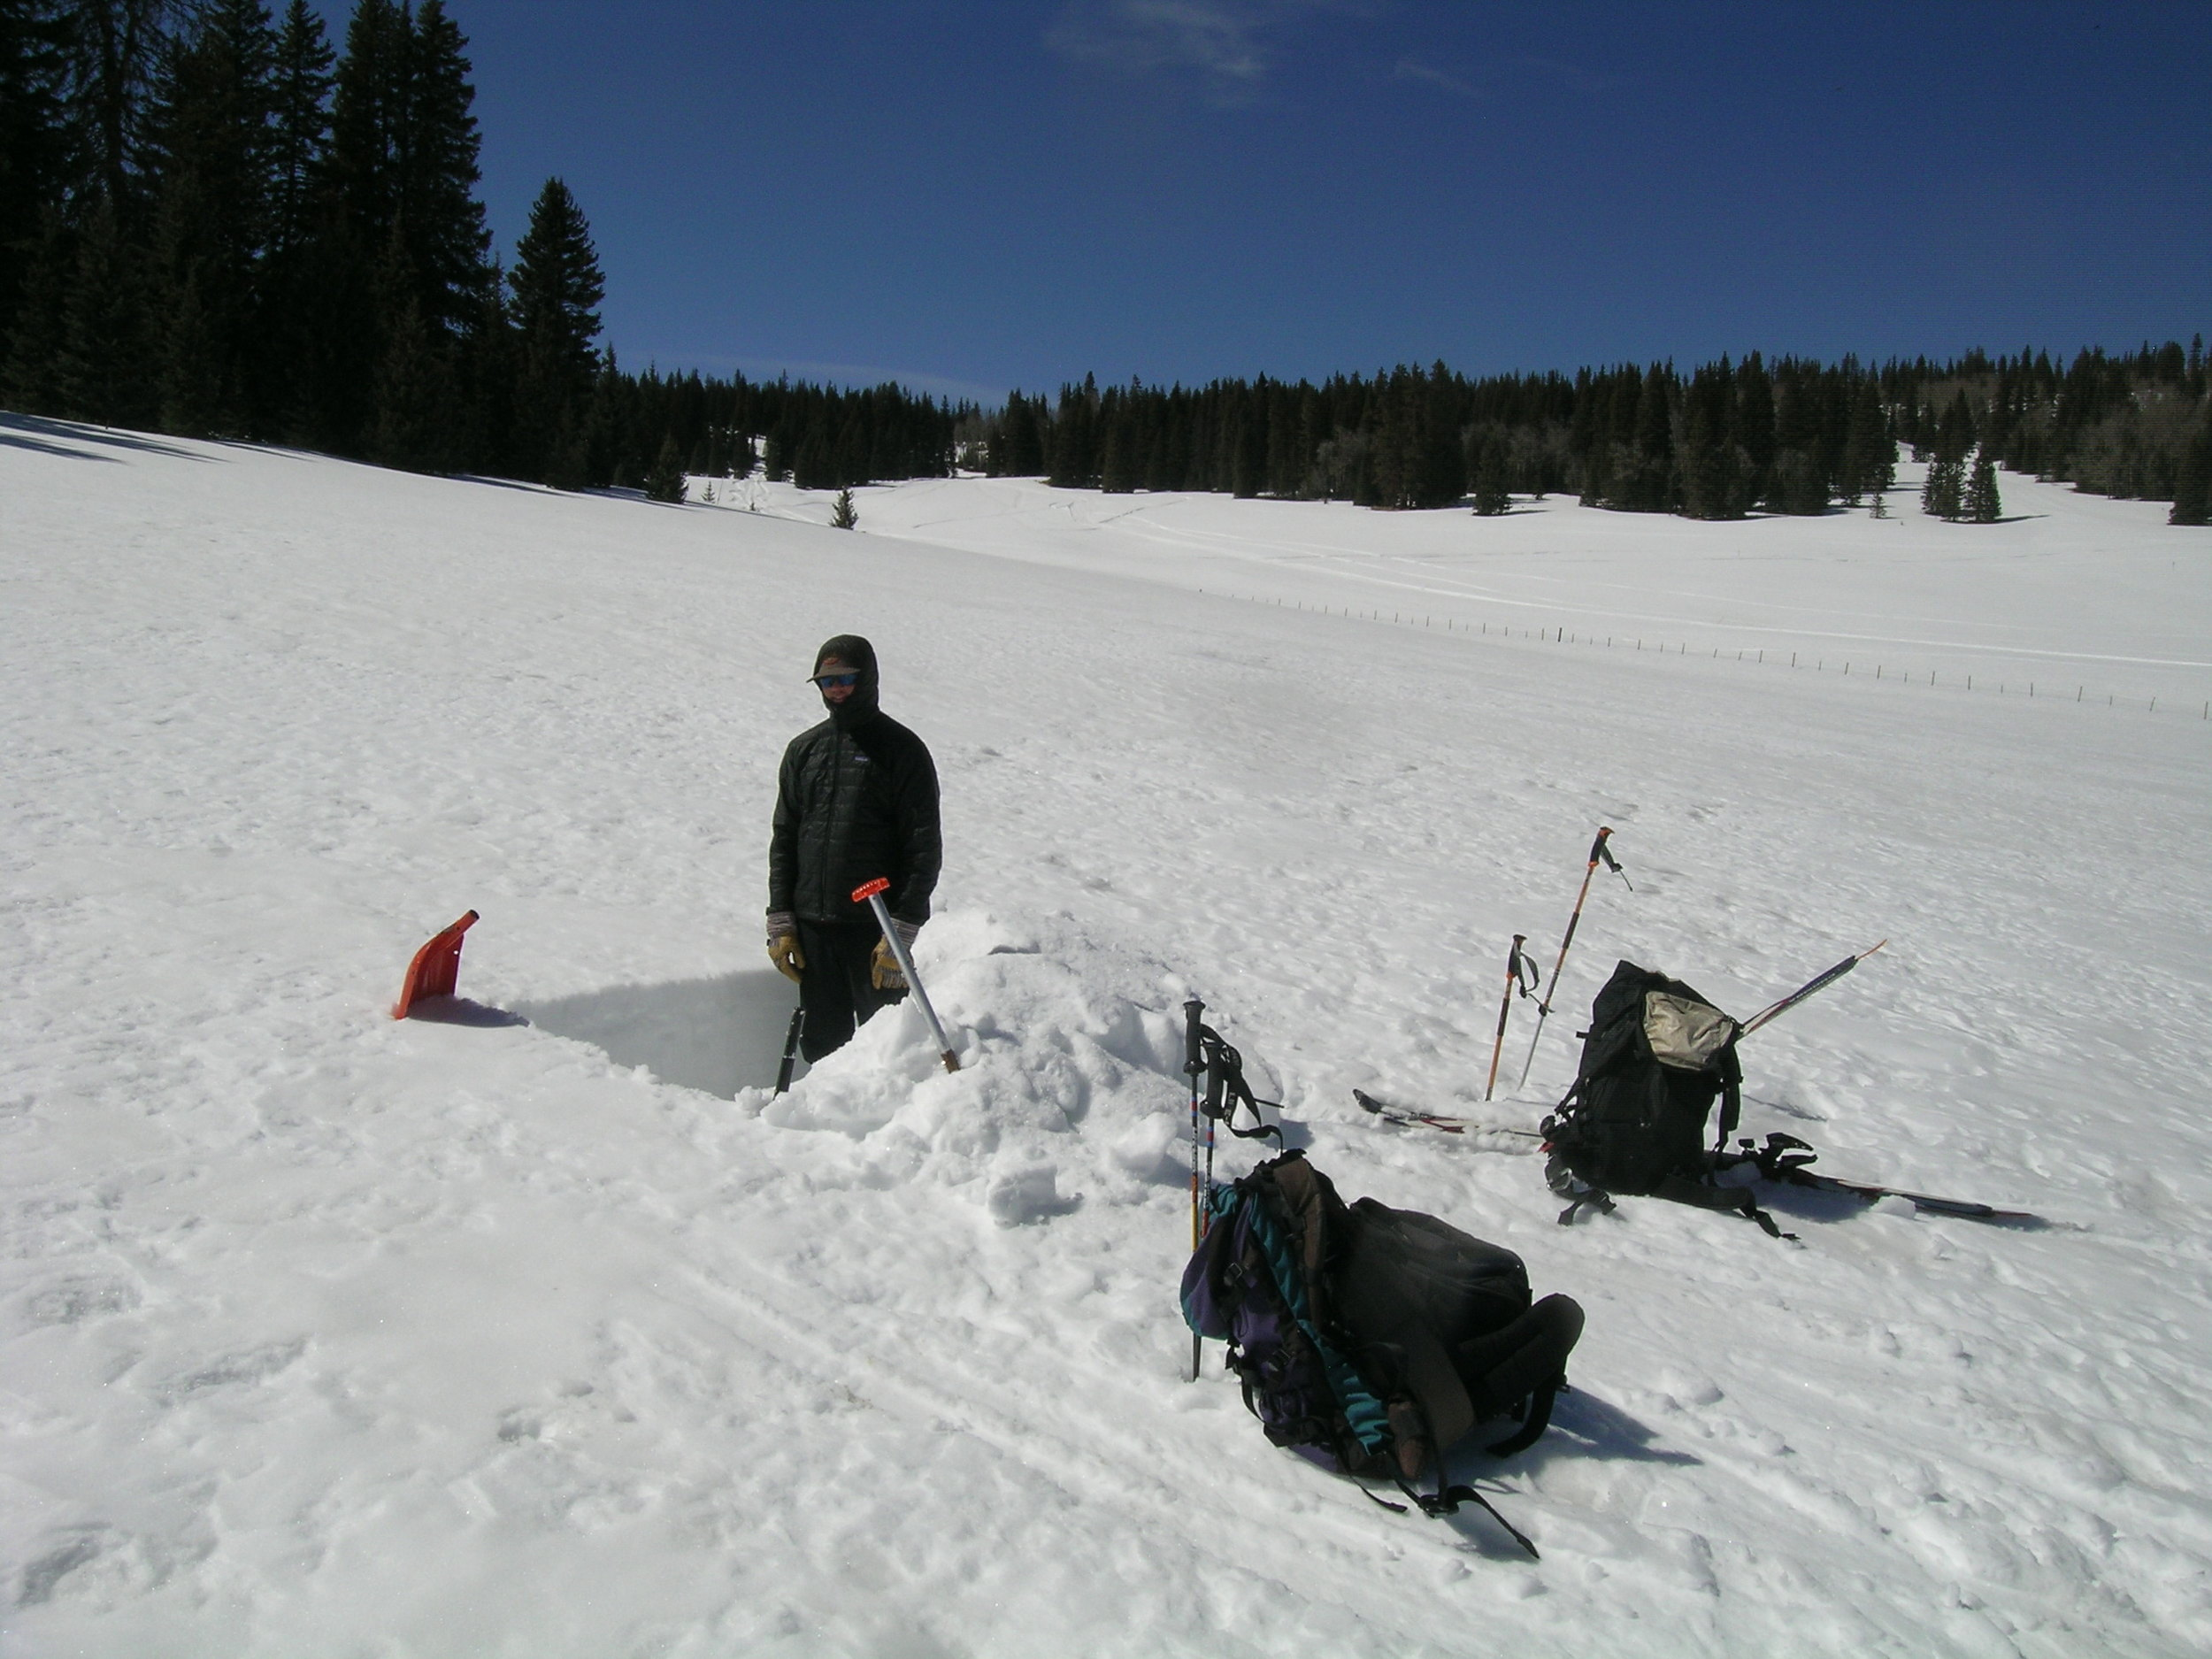 Andrew Temple in the snow pit at Spring Creek Pass CODOS Site, March 17, 2012